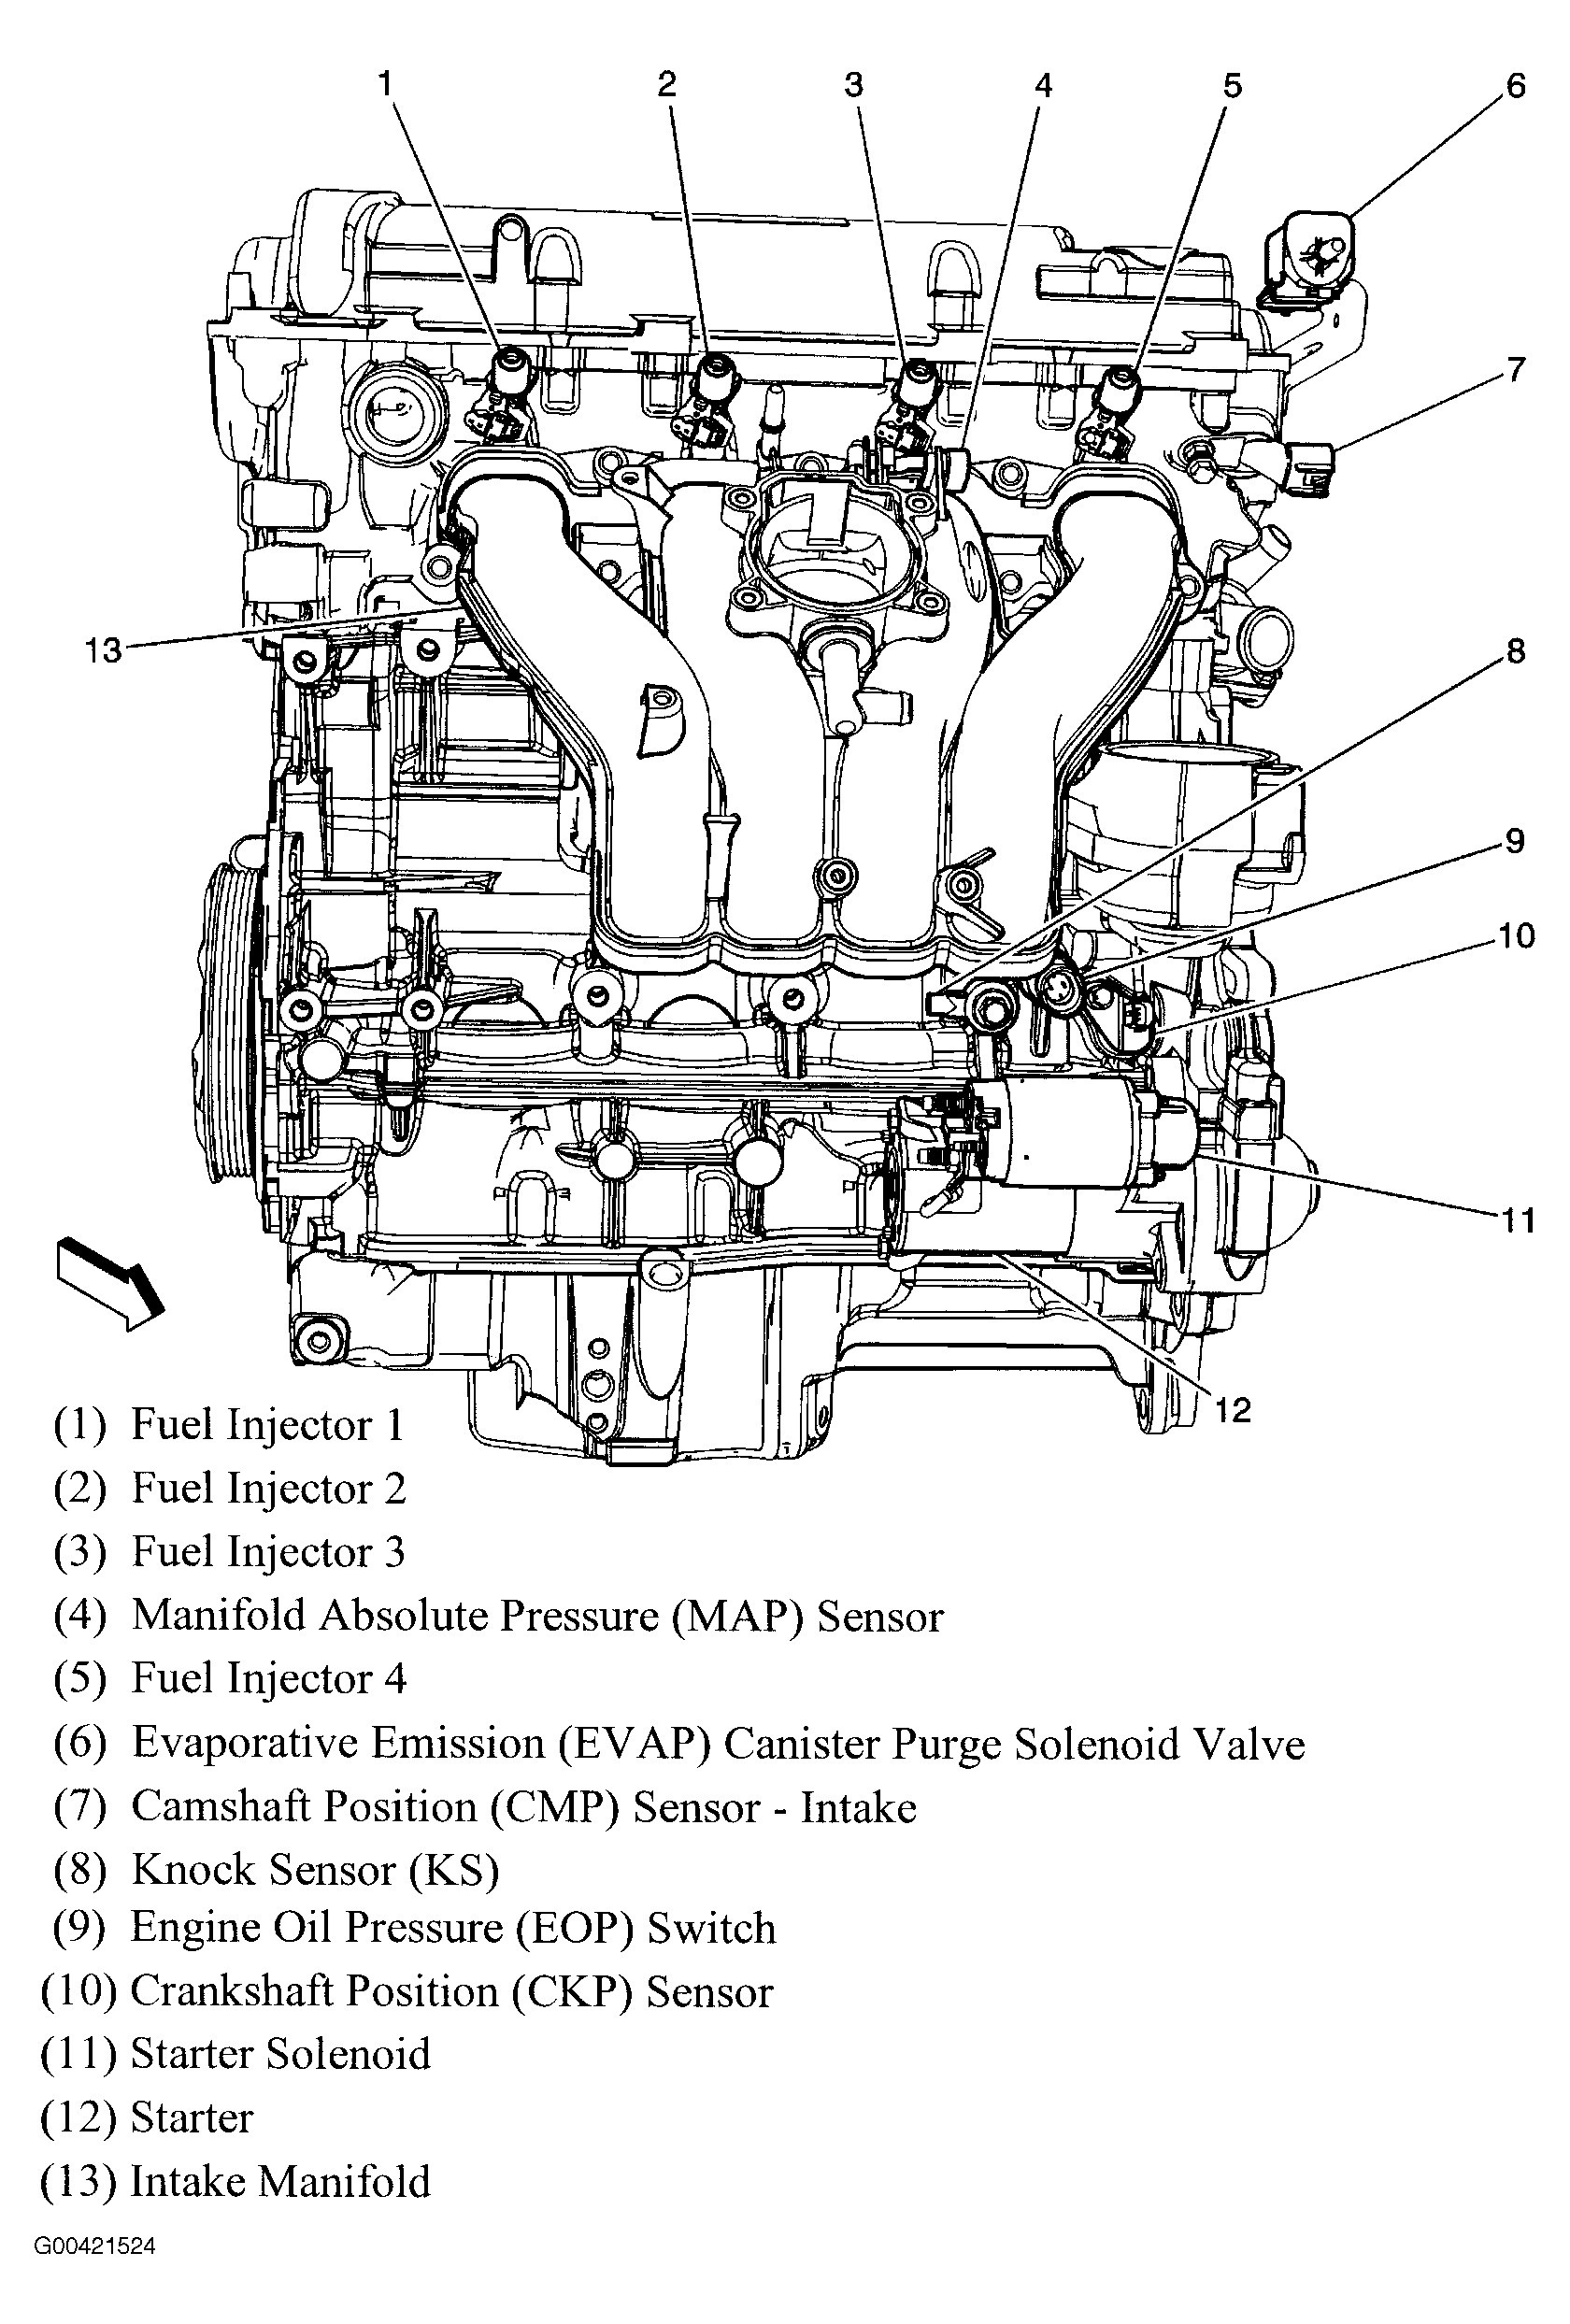 hight resolution of 95 s10 engine diagram wiring diagram toolbox